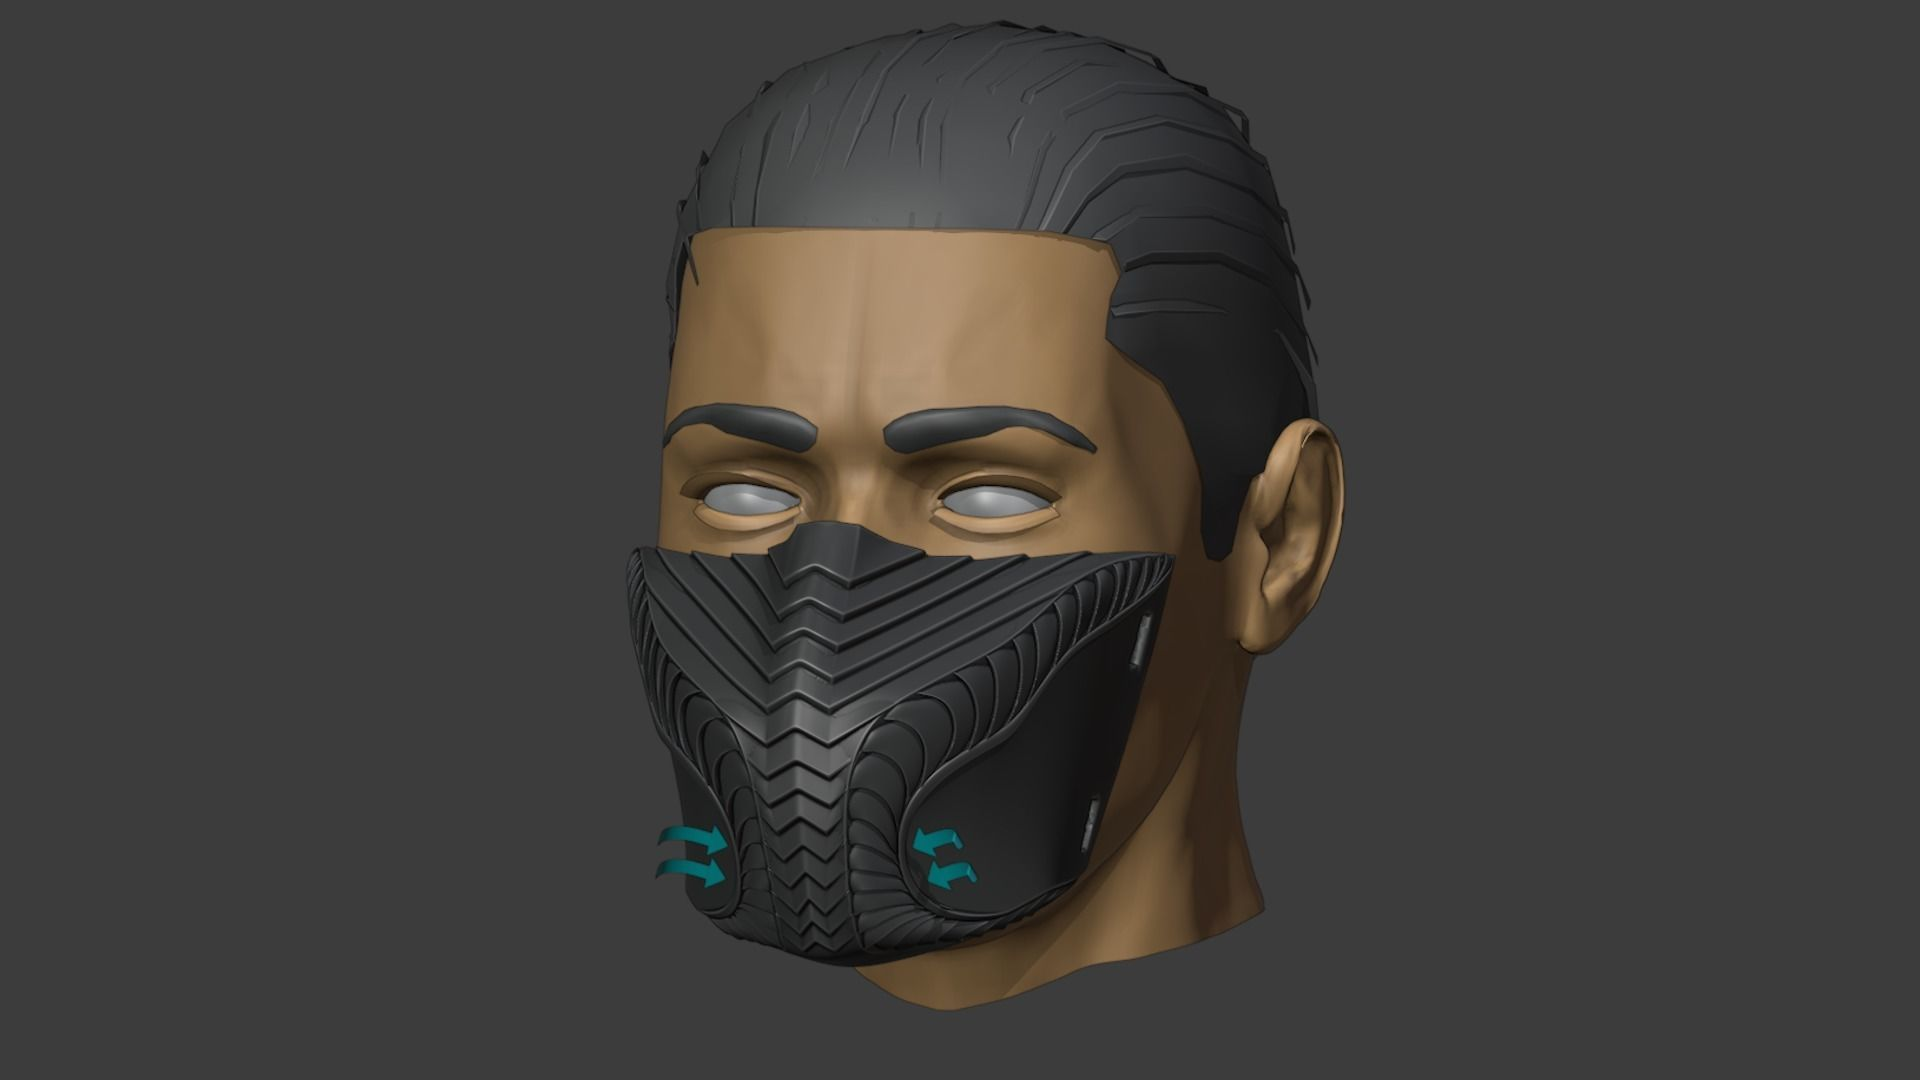 Viper mask with a protective filter